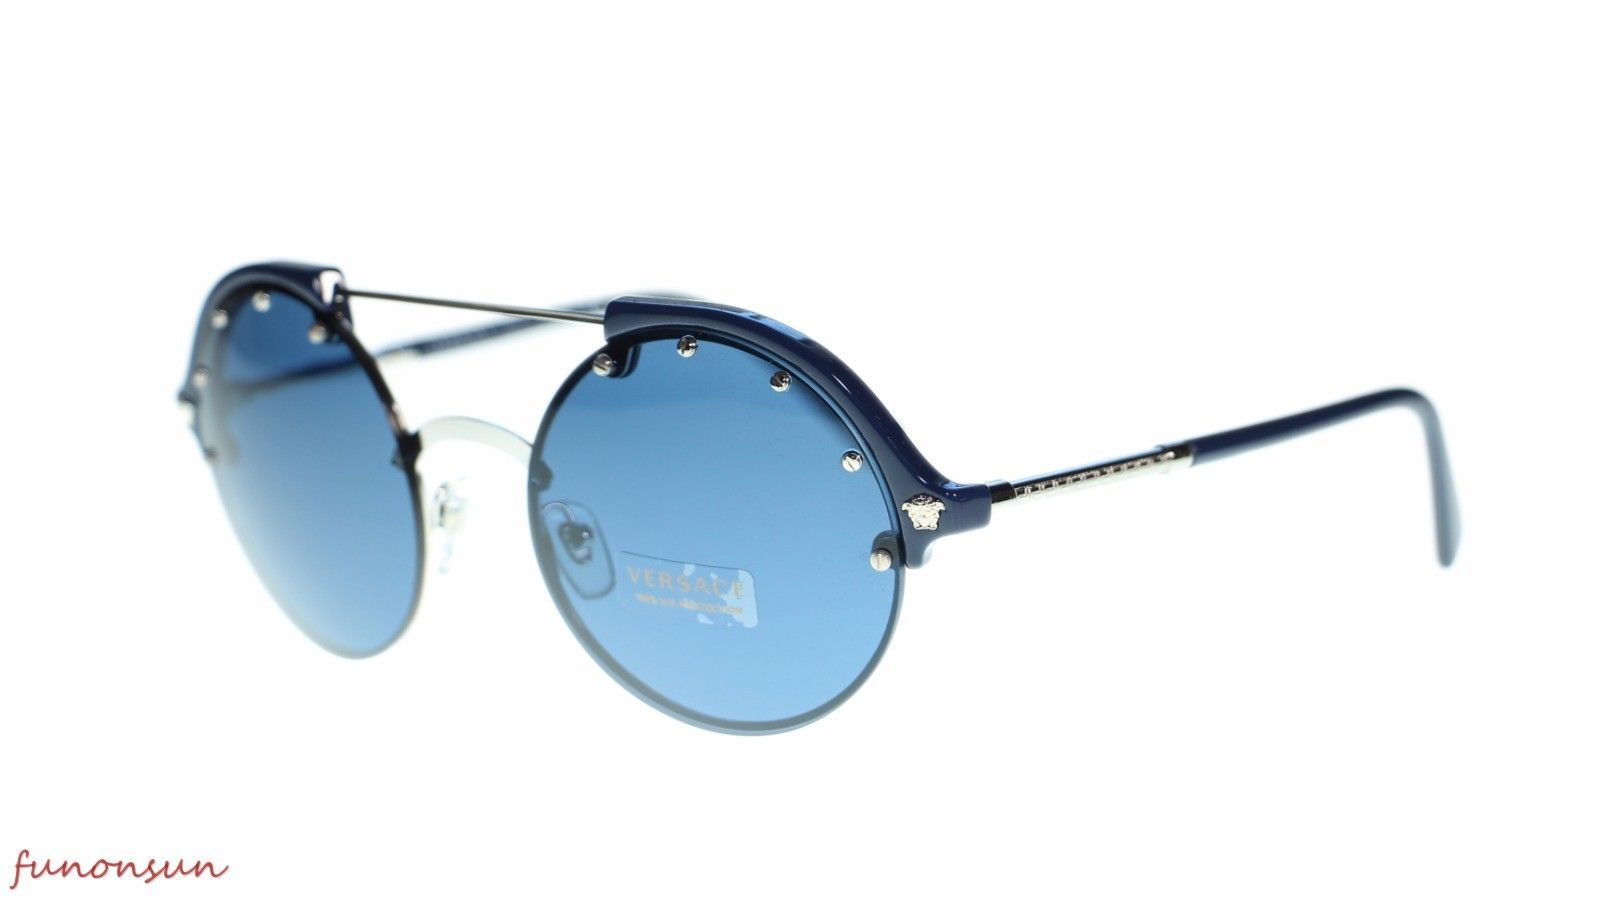 Versace  Women's Sunglasses VE4337 525180 Silver/Blue Blue Lens 53mm